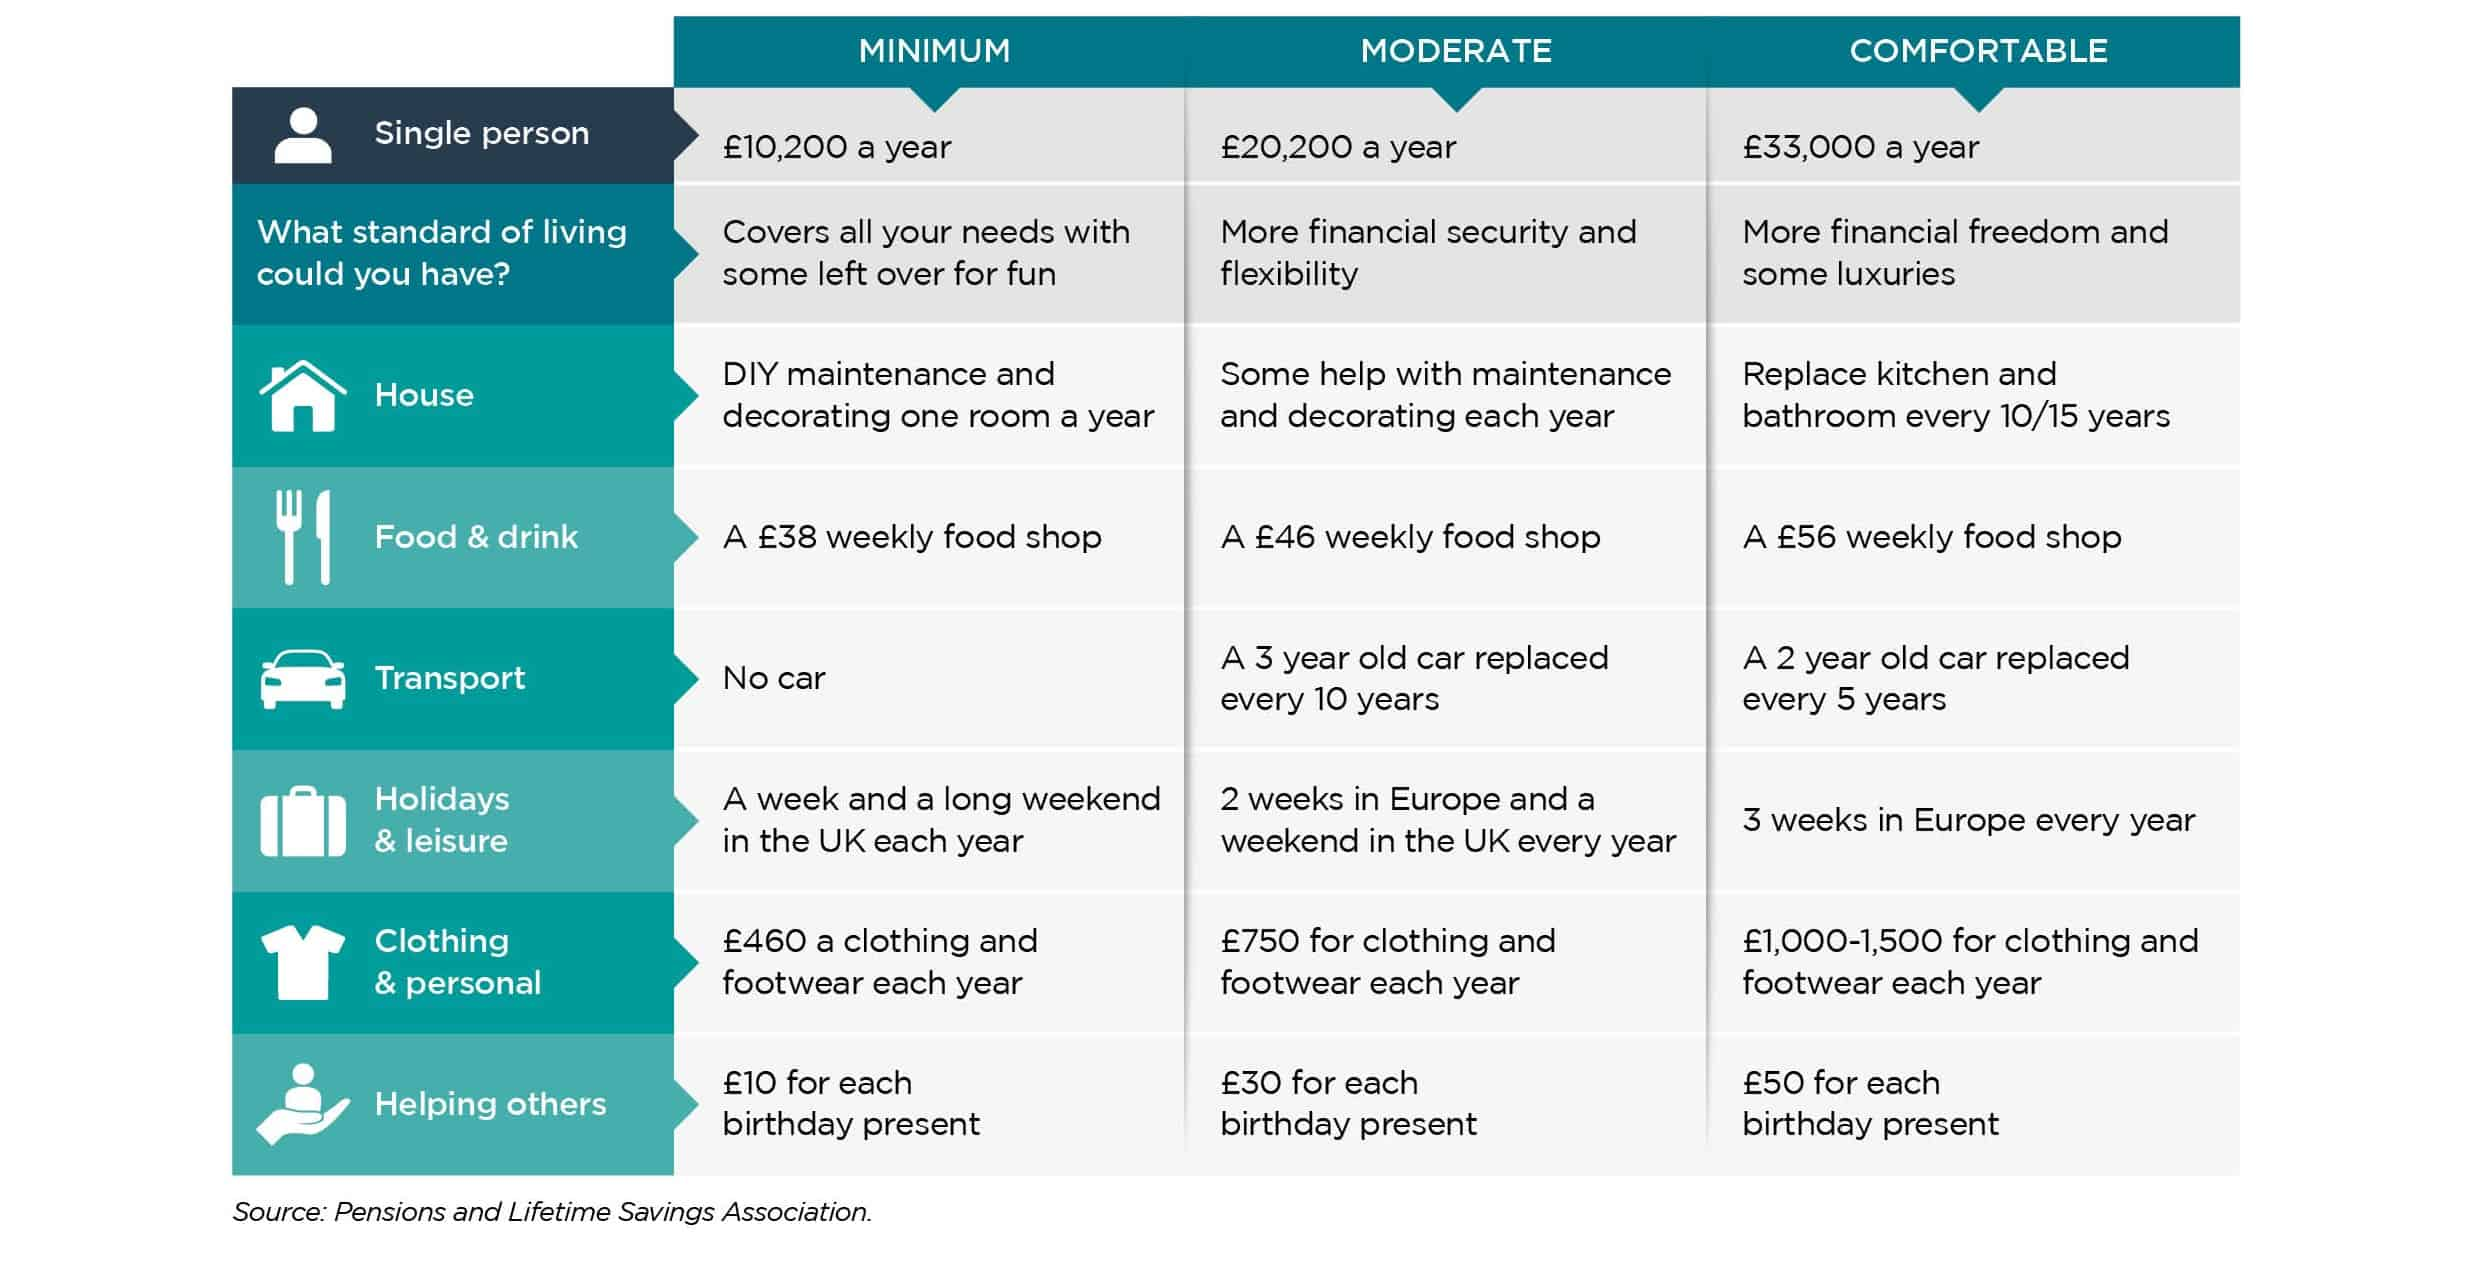 Levels of pension for single people from minimum to moderate to comfortable.